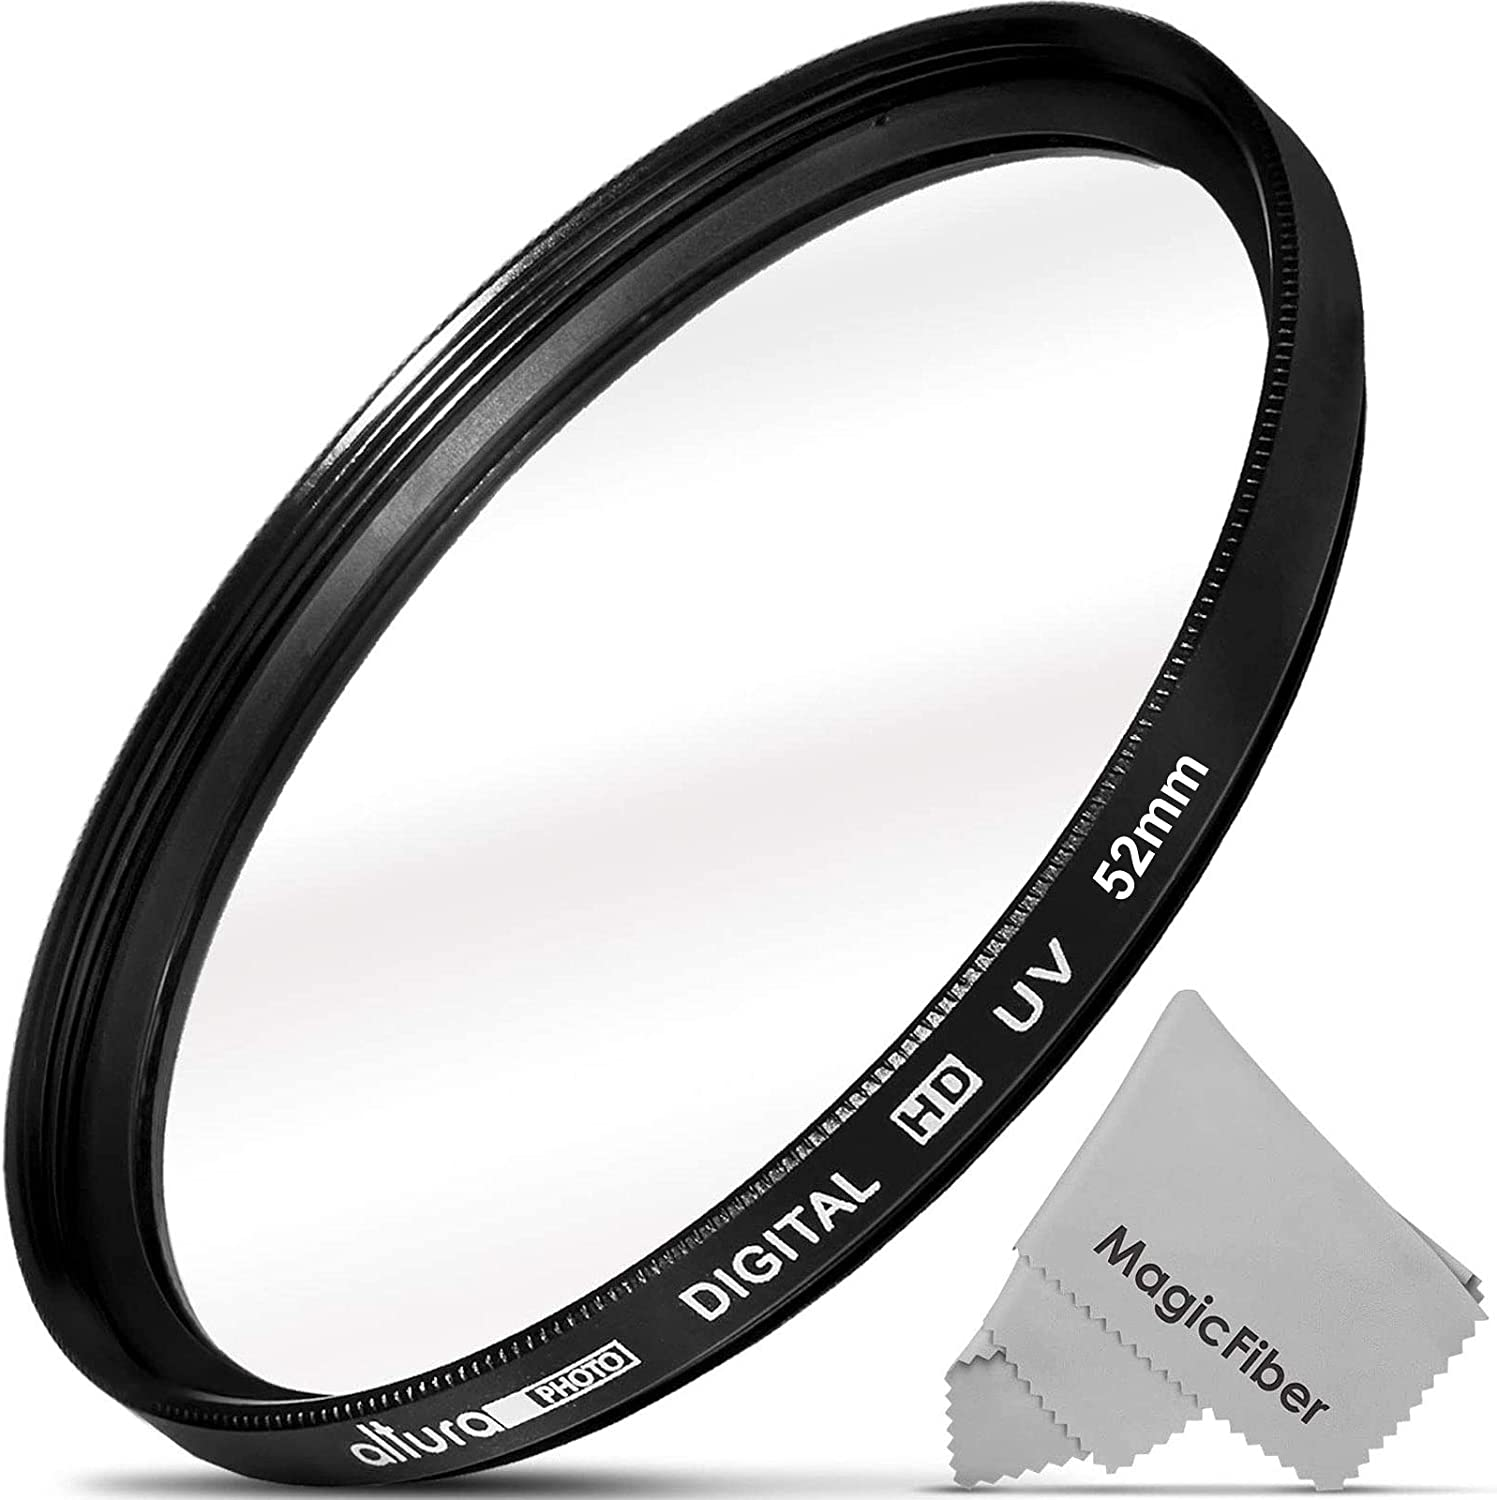 52mm Multithreaded Glass Filter for Nikon D5200 Haze 1A Multicoated UV